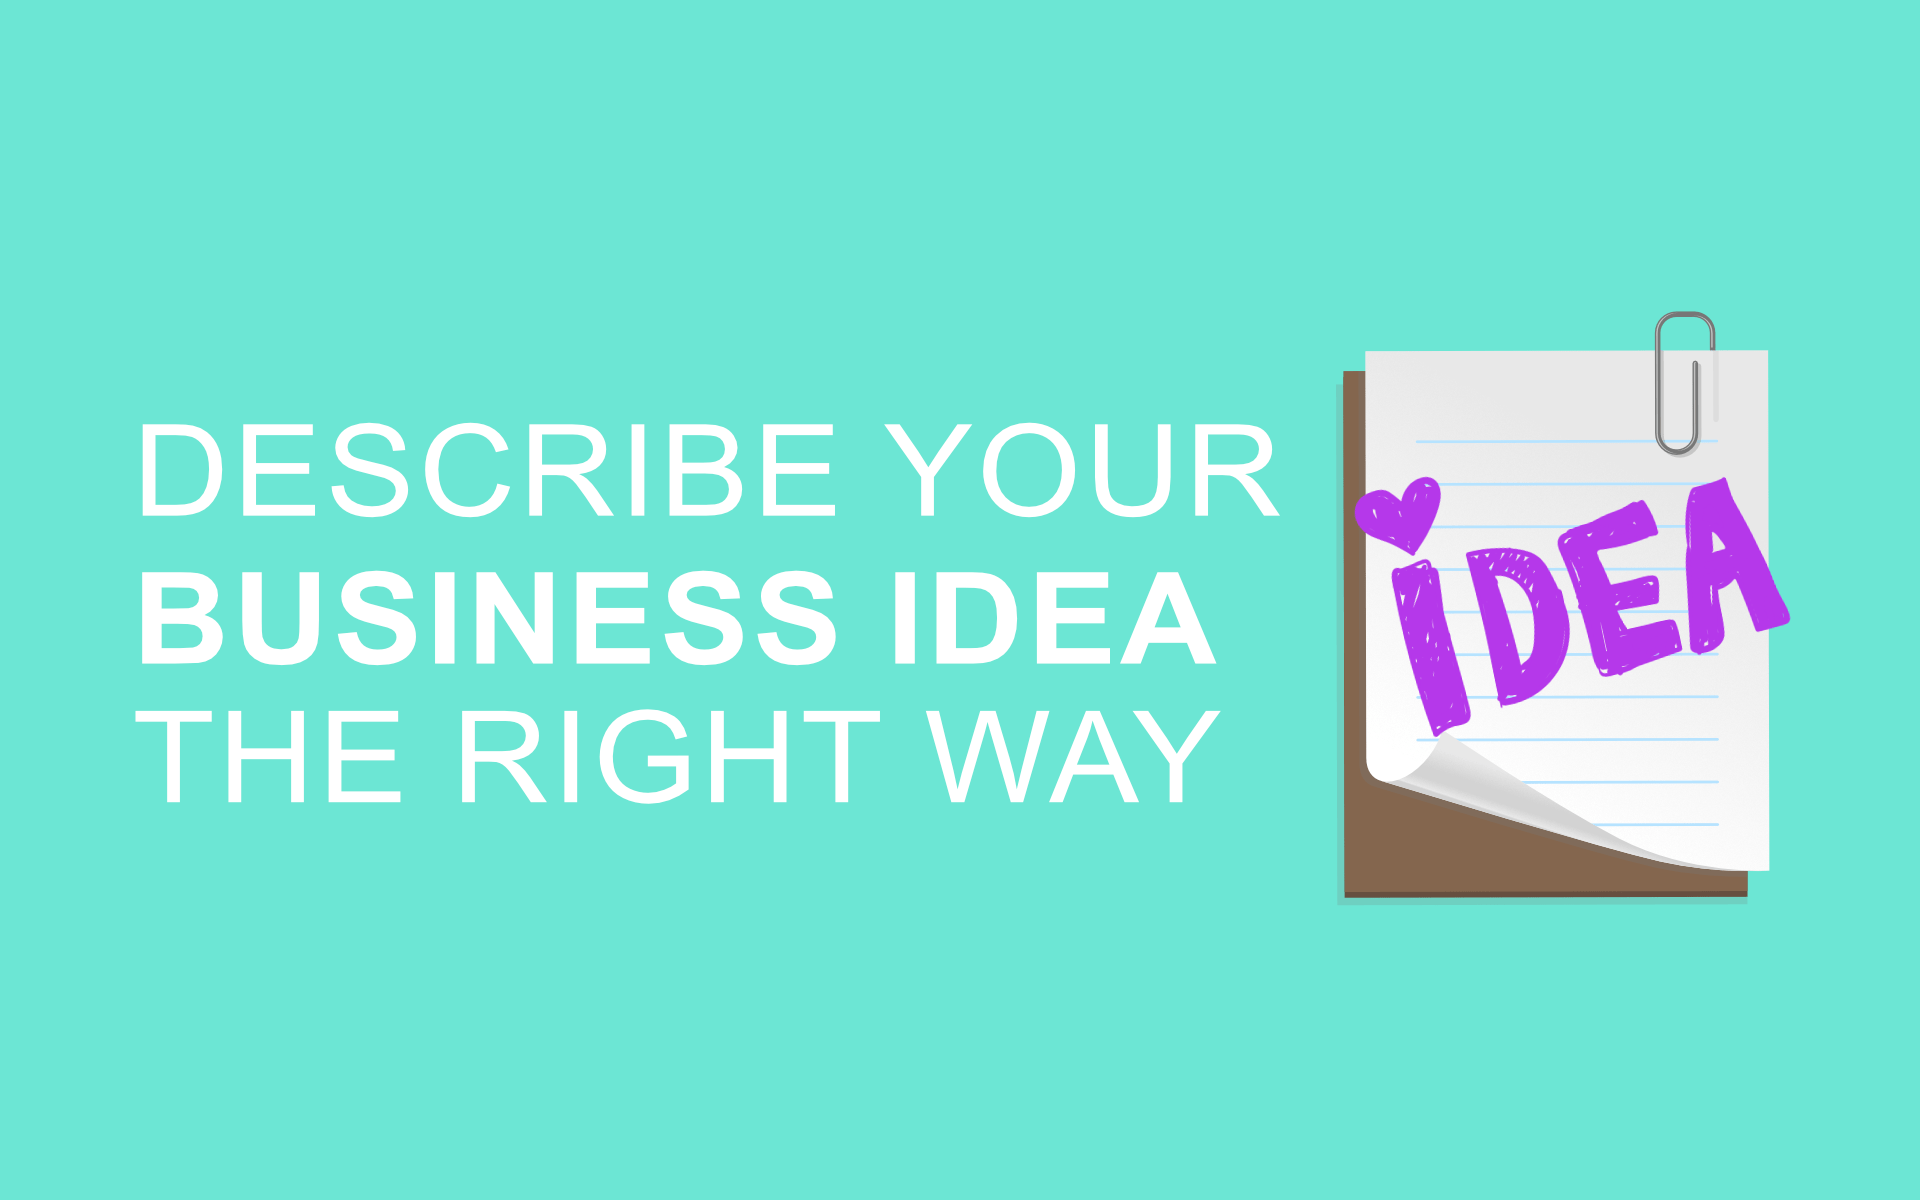 Describe your Business idea the right way